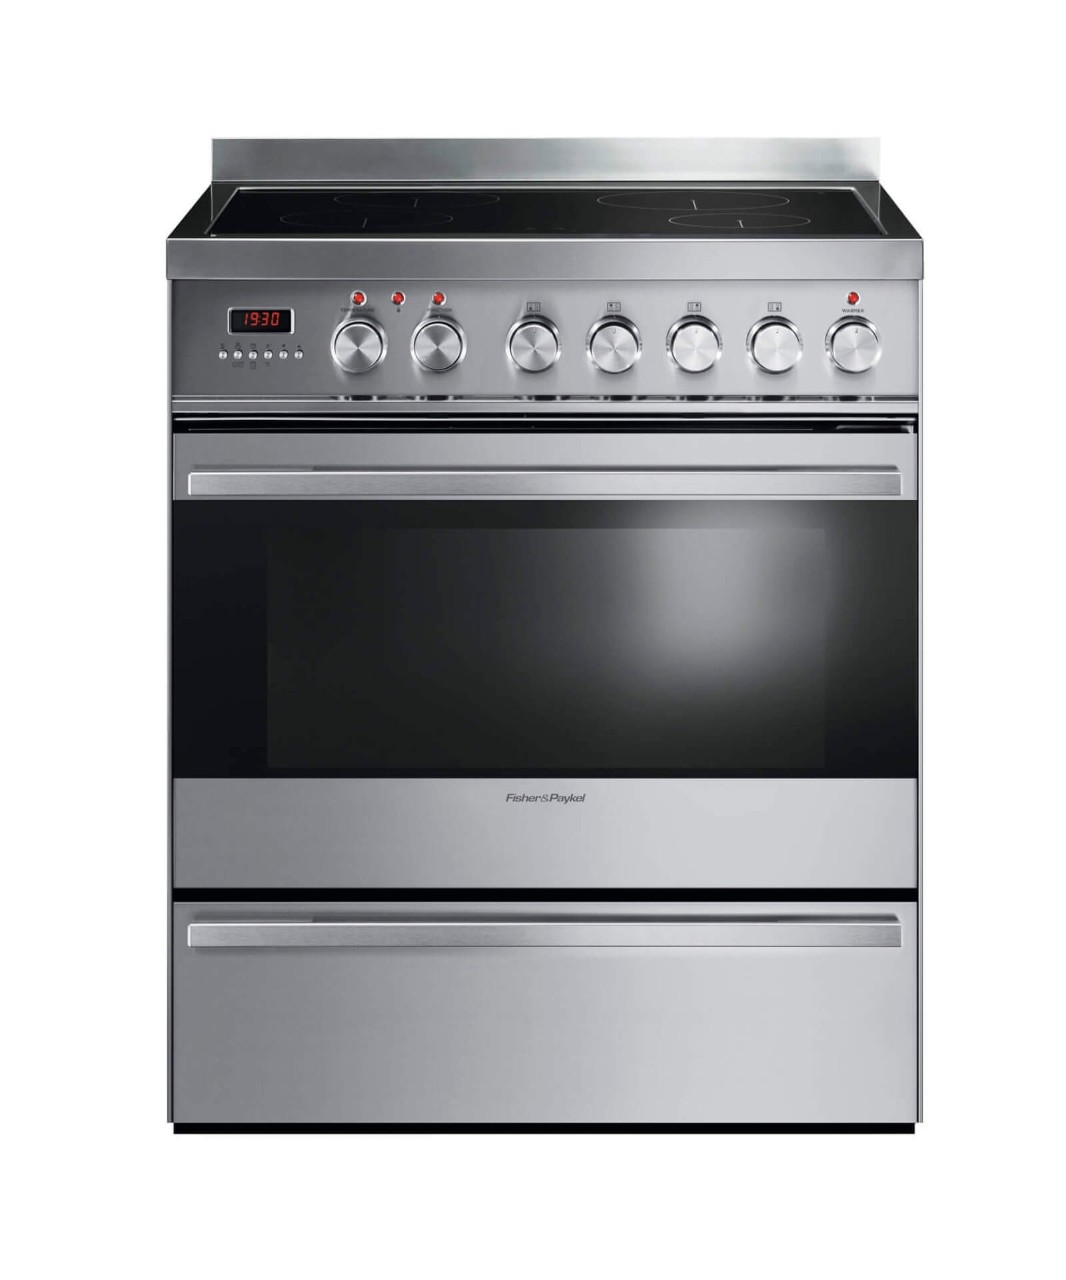 "Fisher and Paykel Induction Range 30"", Self Cleaning"